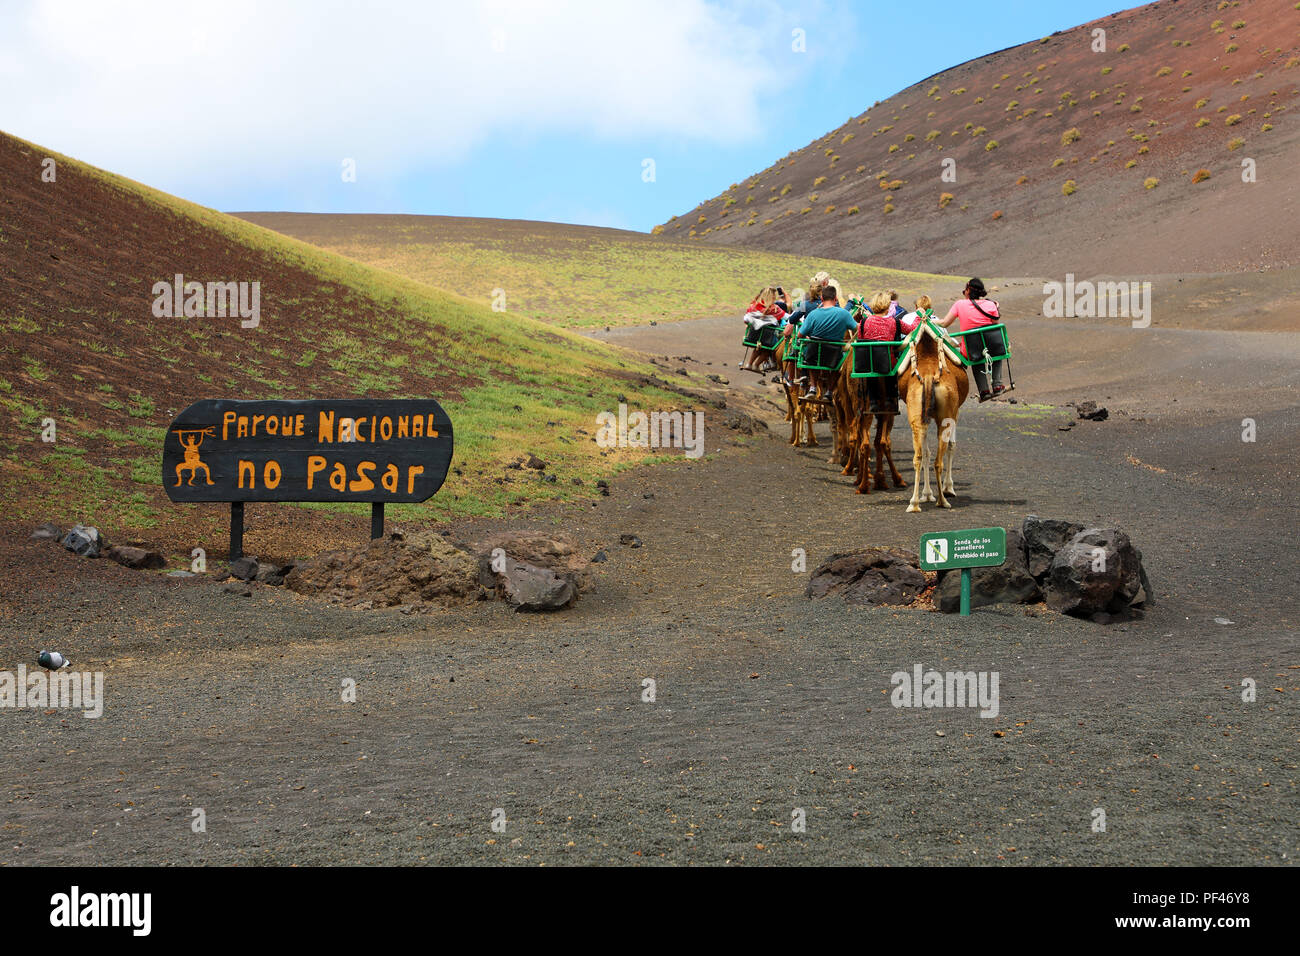 Caravan of camels with tourists in Timanfaya National Park, Lanzarote, Canary Islands - Stock Image